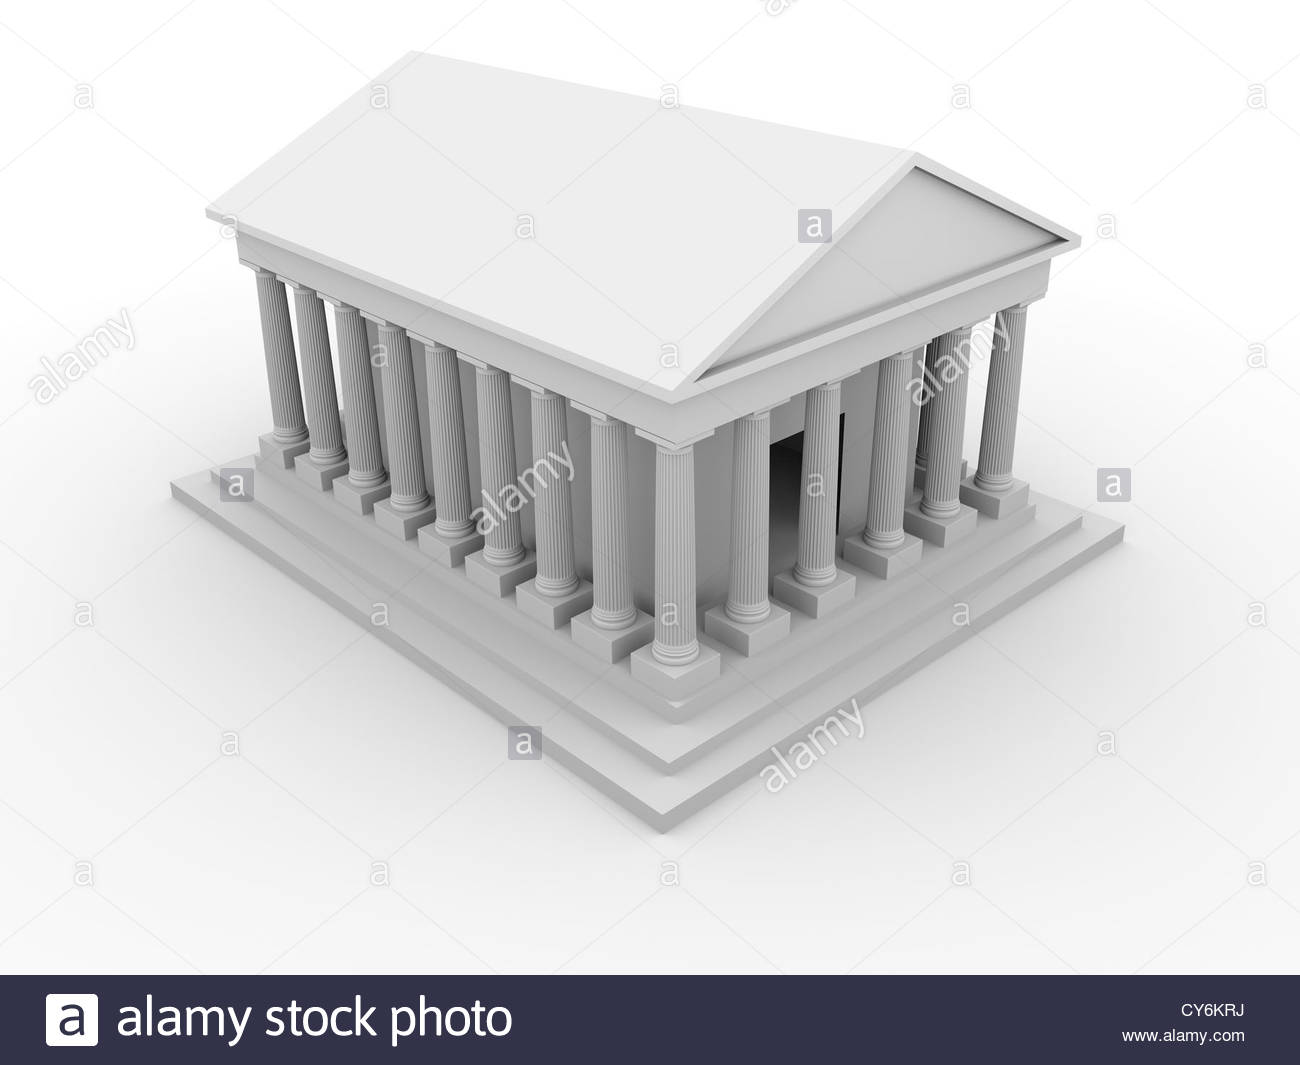 Illustration of an ancient greek temple with columns - Stock Image